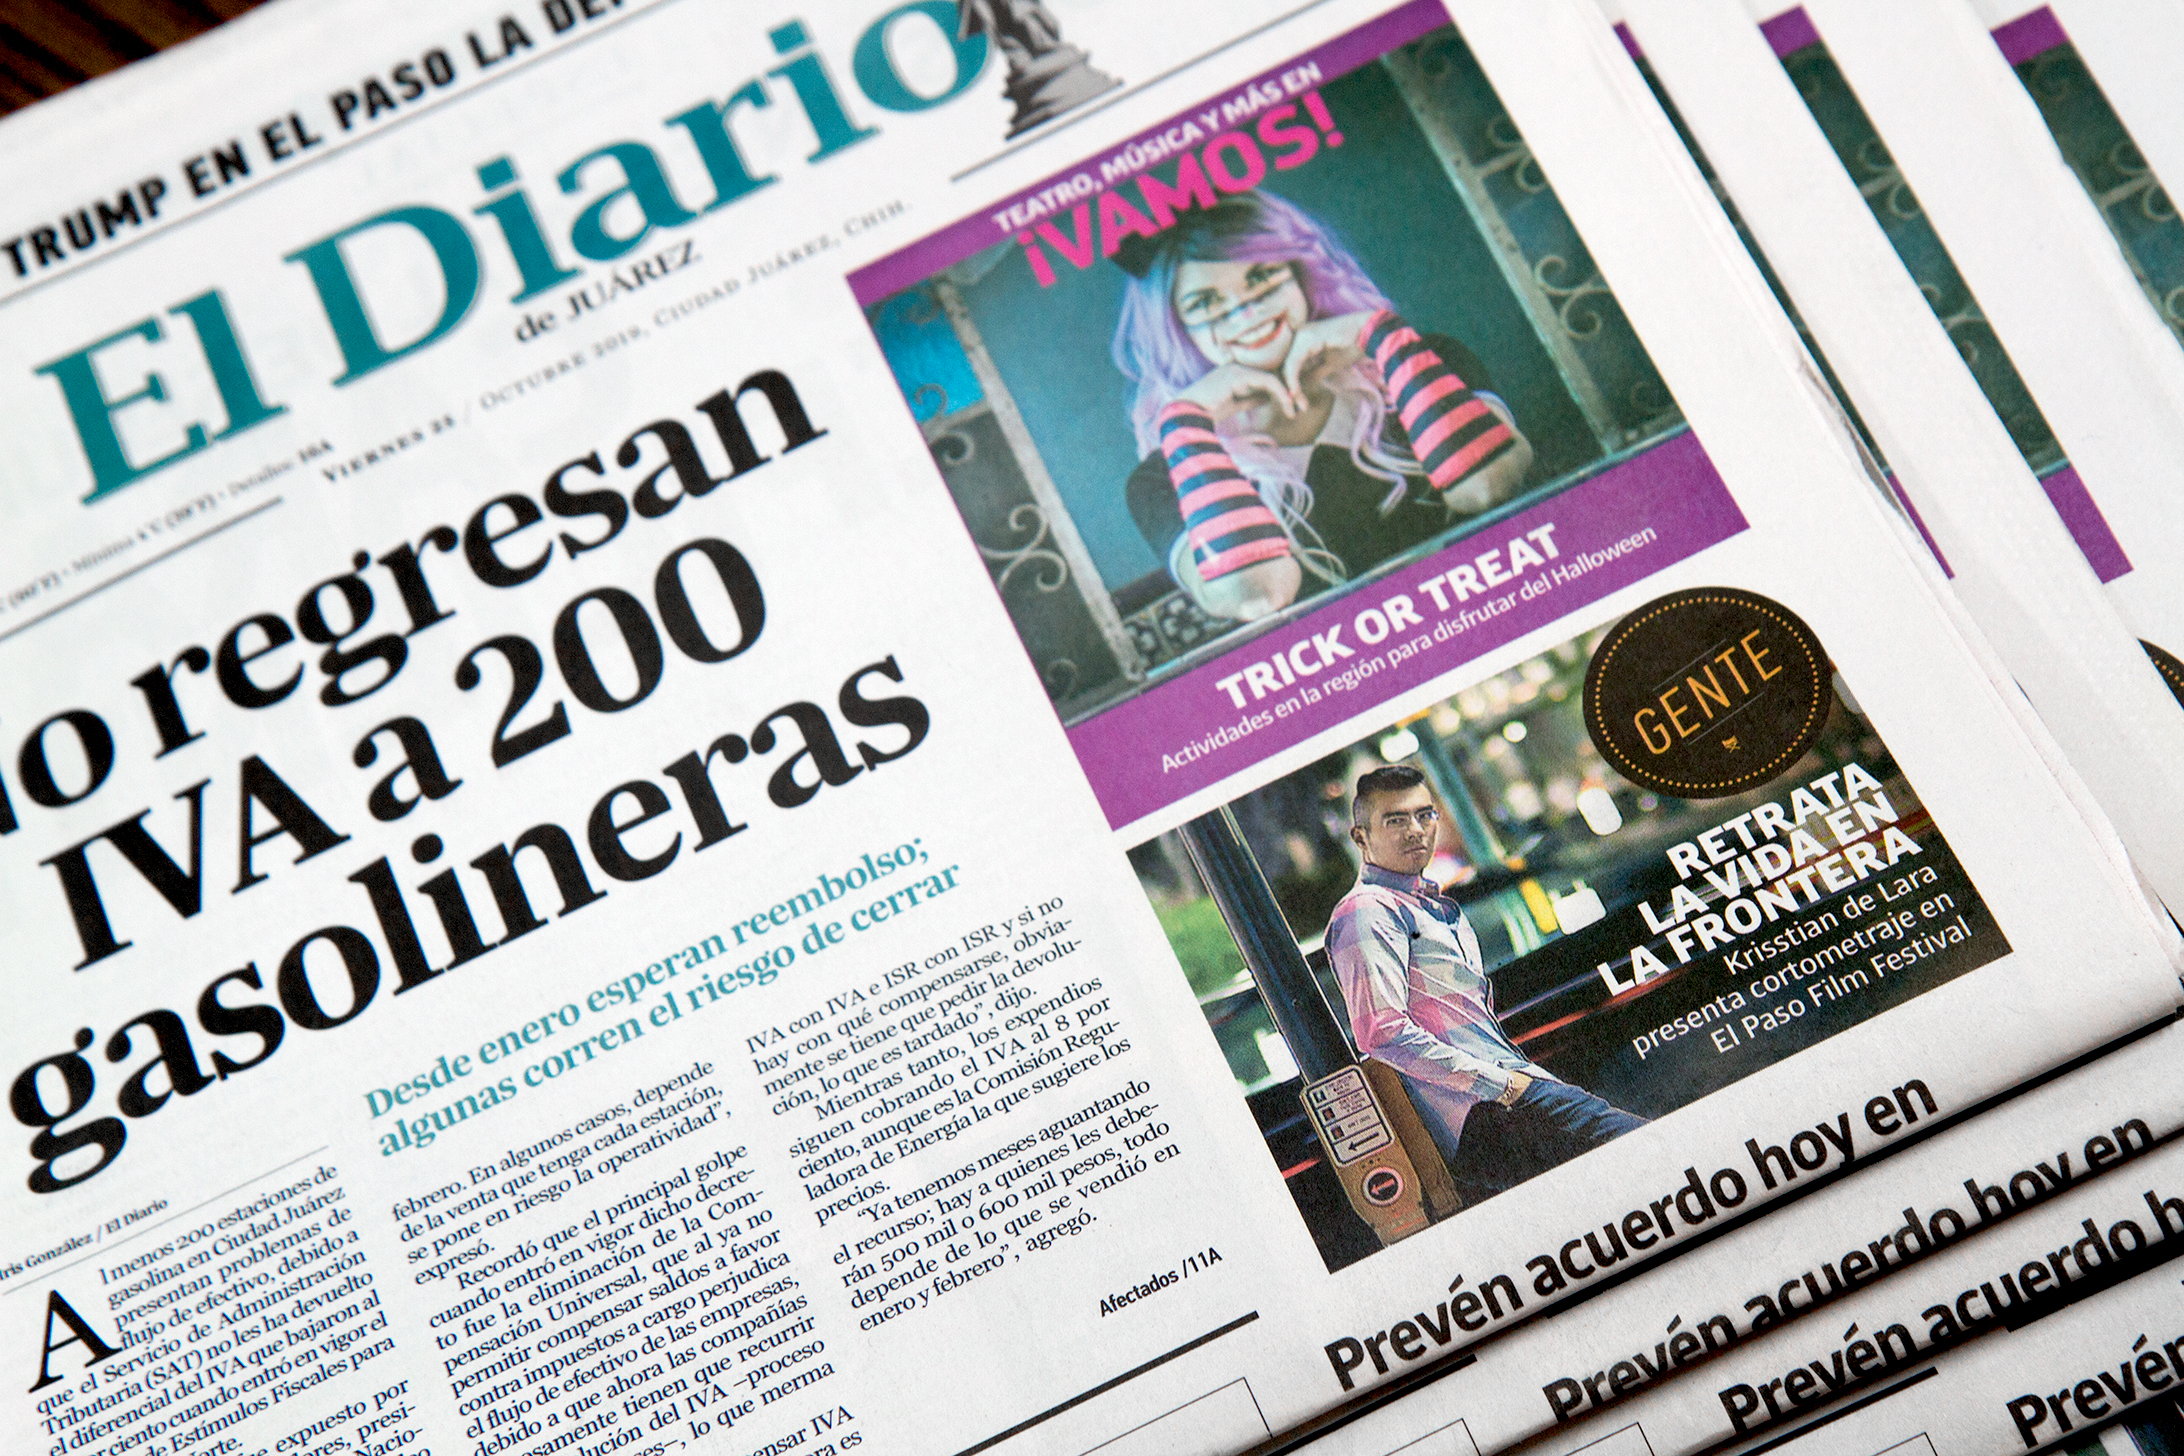 Krisstian de Lara gets featured on El Diario de Juarez' front page